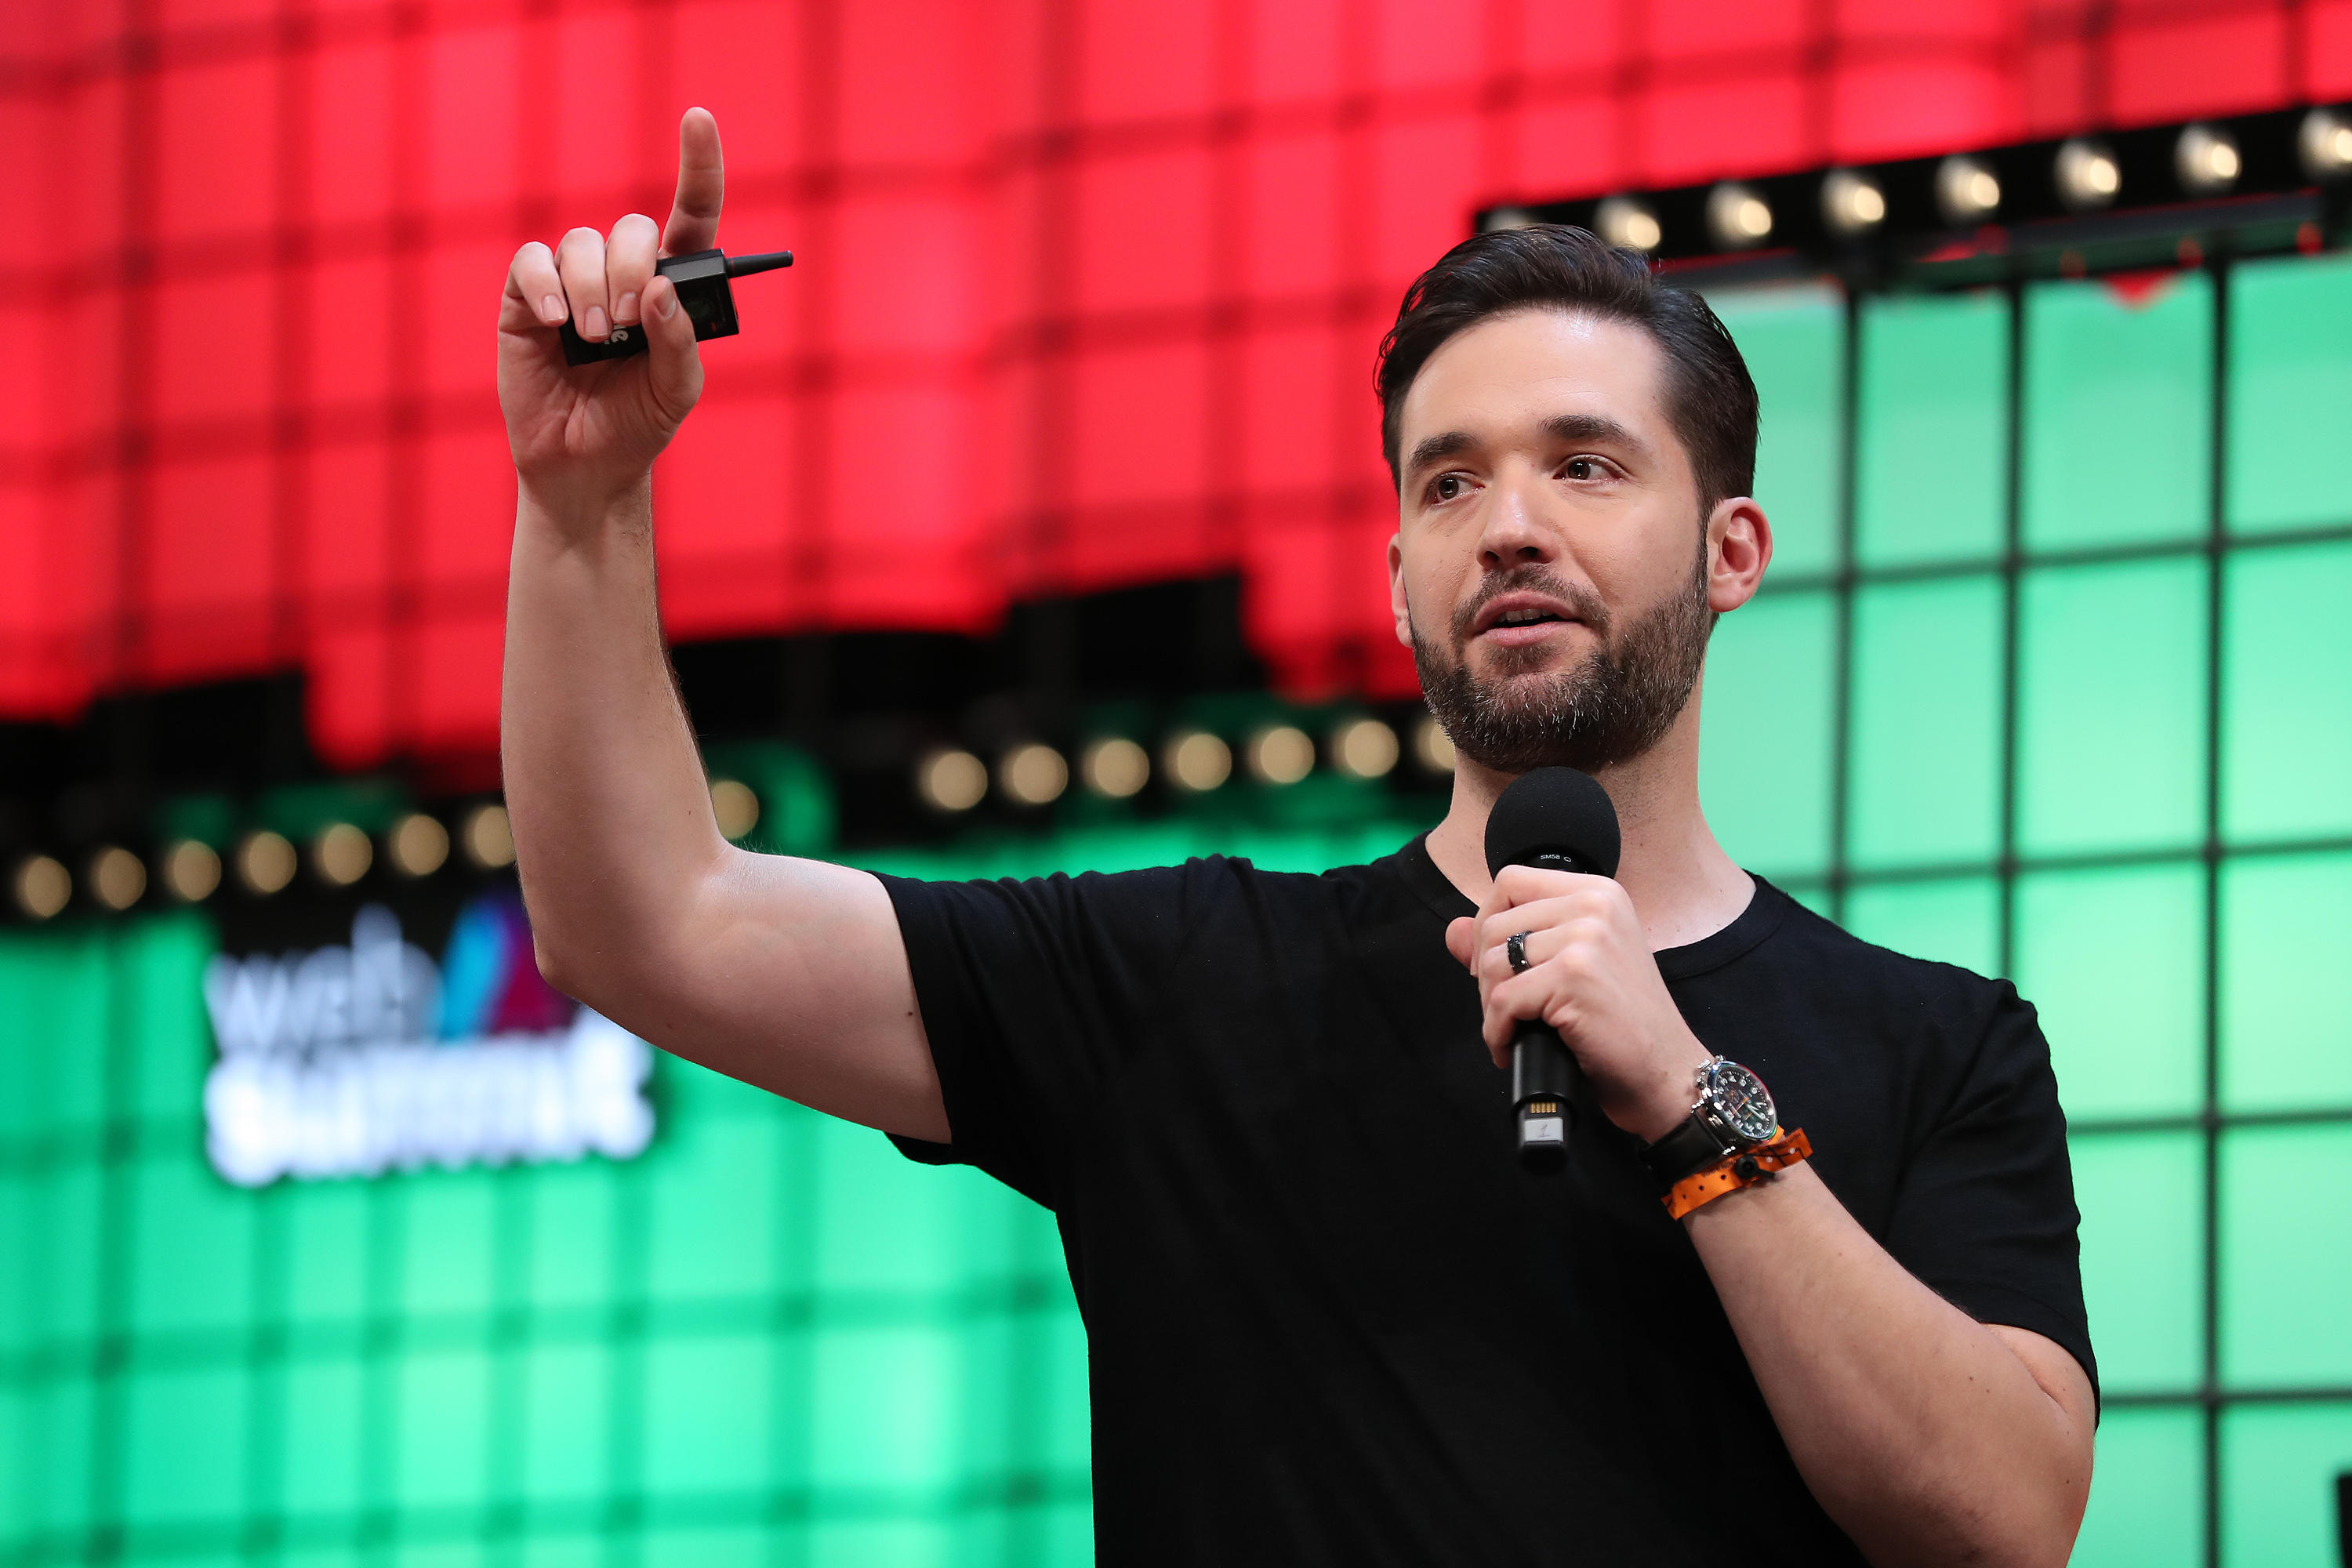 Alexis Ohanian gestures with a microphone